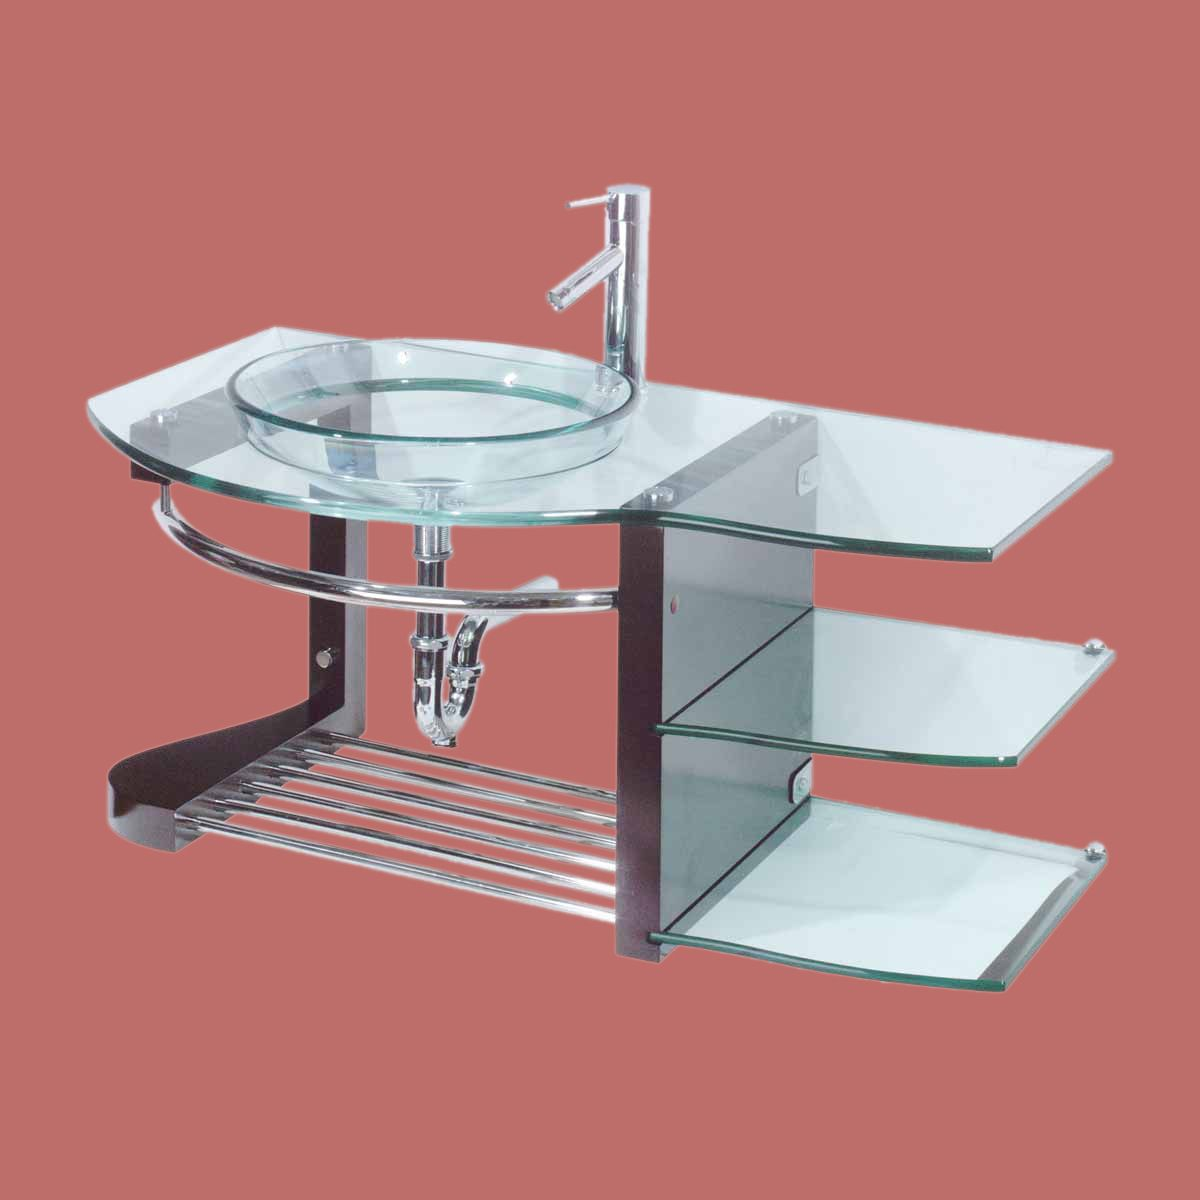 Glass Sinks Glass/Stainless Bauhaus Wall Mount Vessel